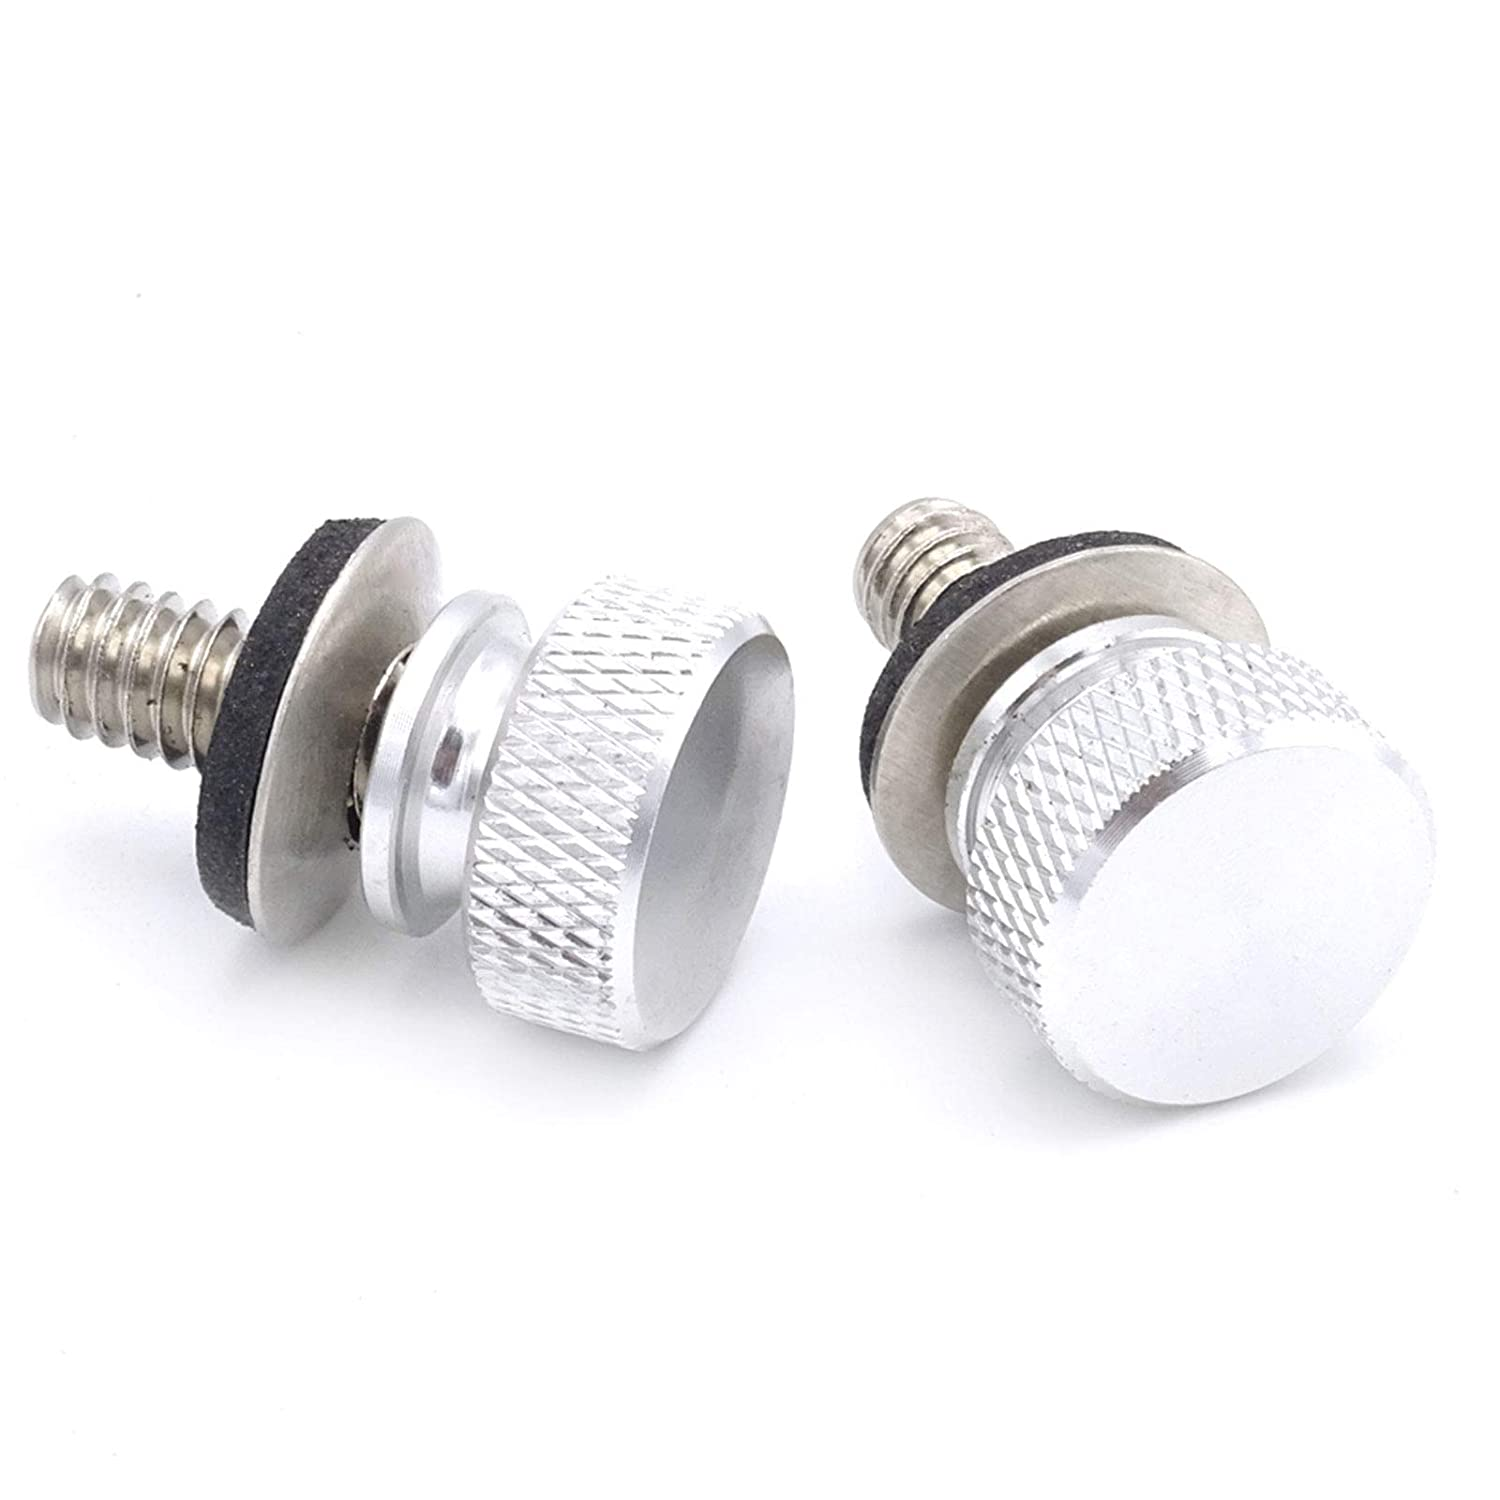 DaSen Chrome 2x Billet Aluminum Hard Anodized 1//4 Seat Thumb Bolts Screw Fits 1996-2016 Harley Davidson Sportster Touring Road King Dyna Fatbob Street Glide Road Glide and other models